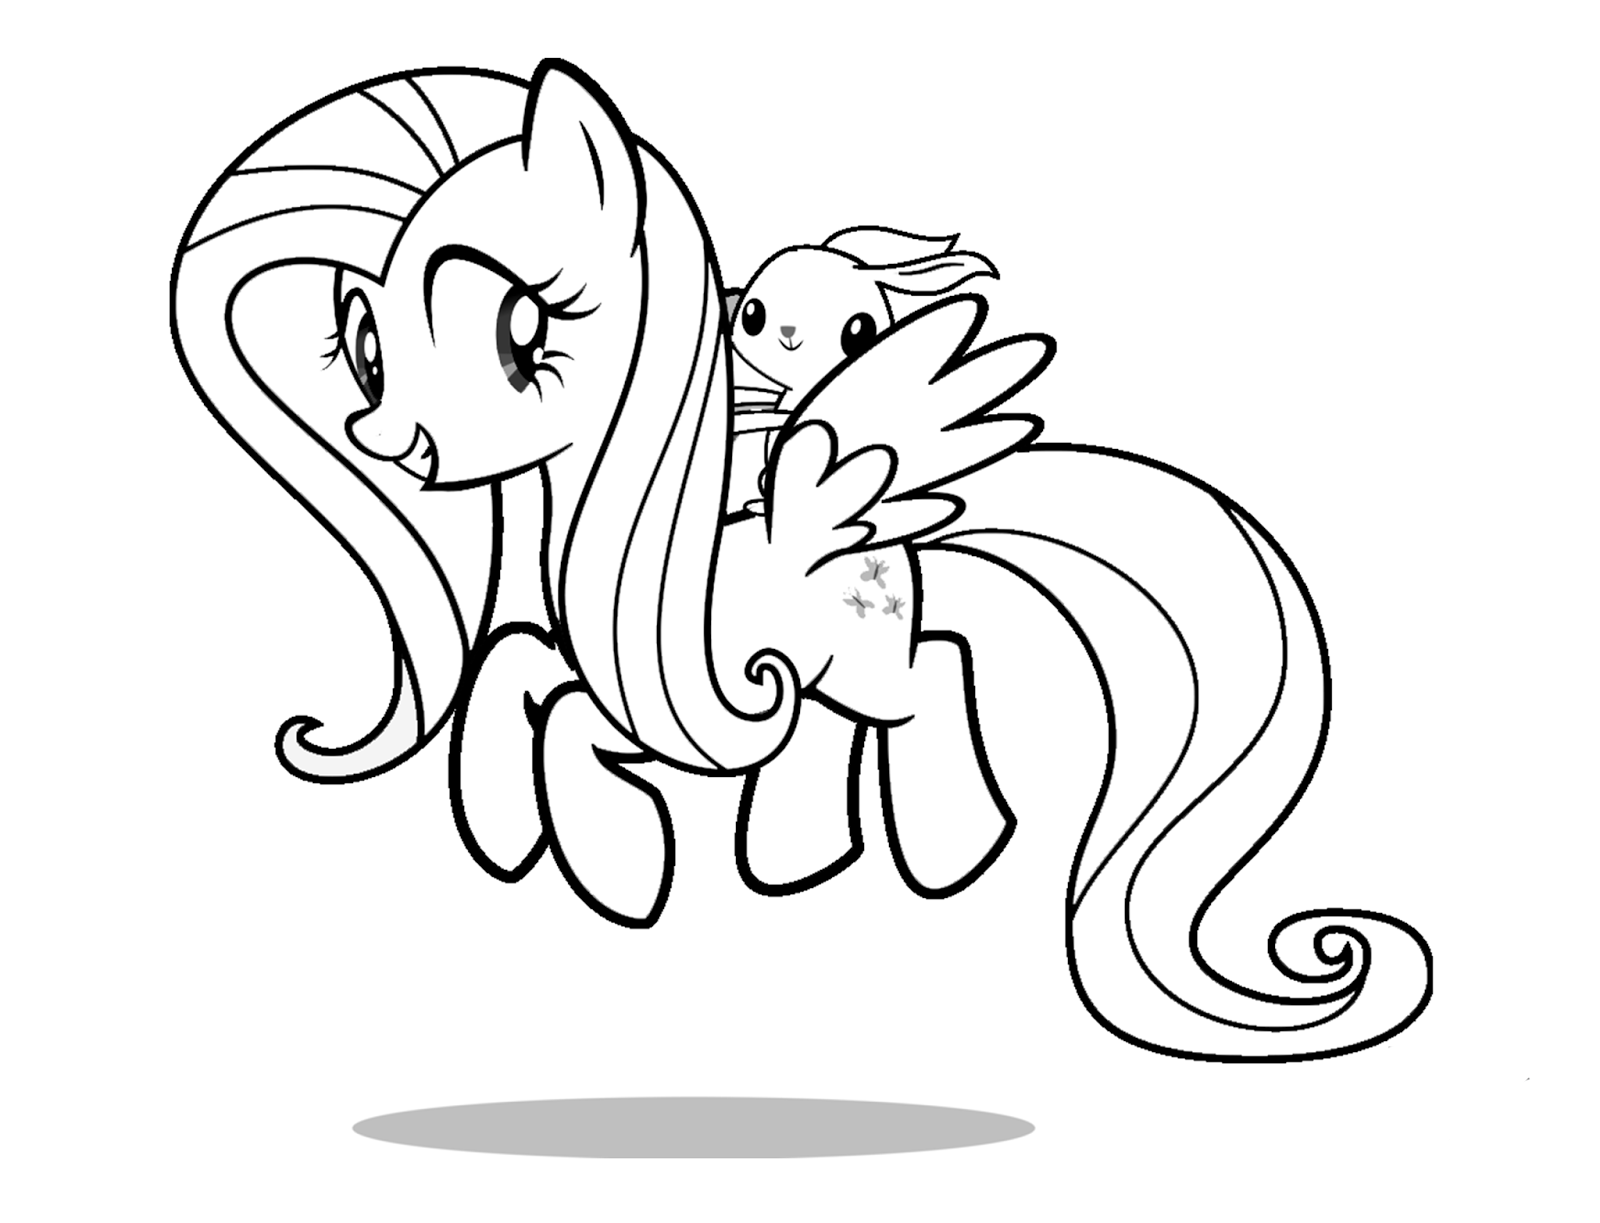 My Little Pony Fluttershy Ausmalbilder : Fluttershy Coloring Pages Best Coloring Pages For Kids